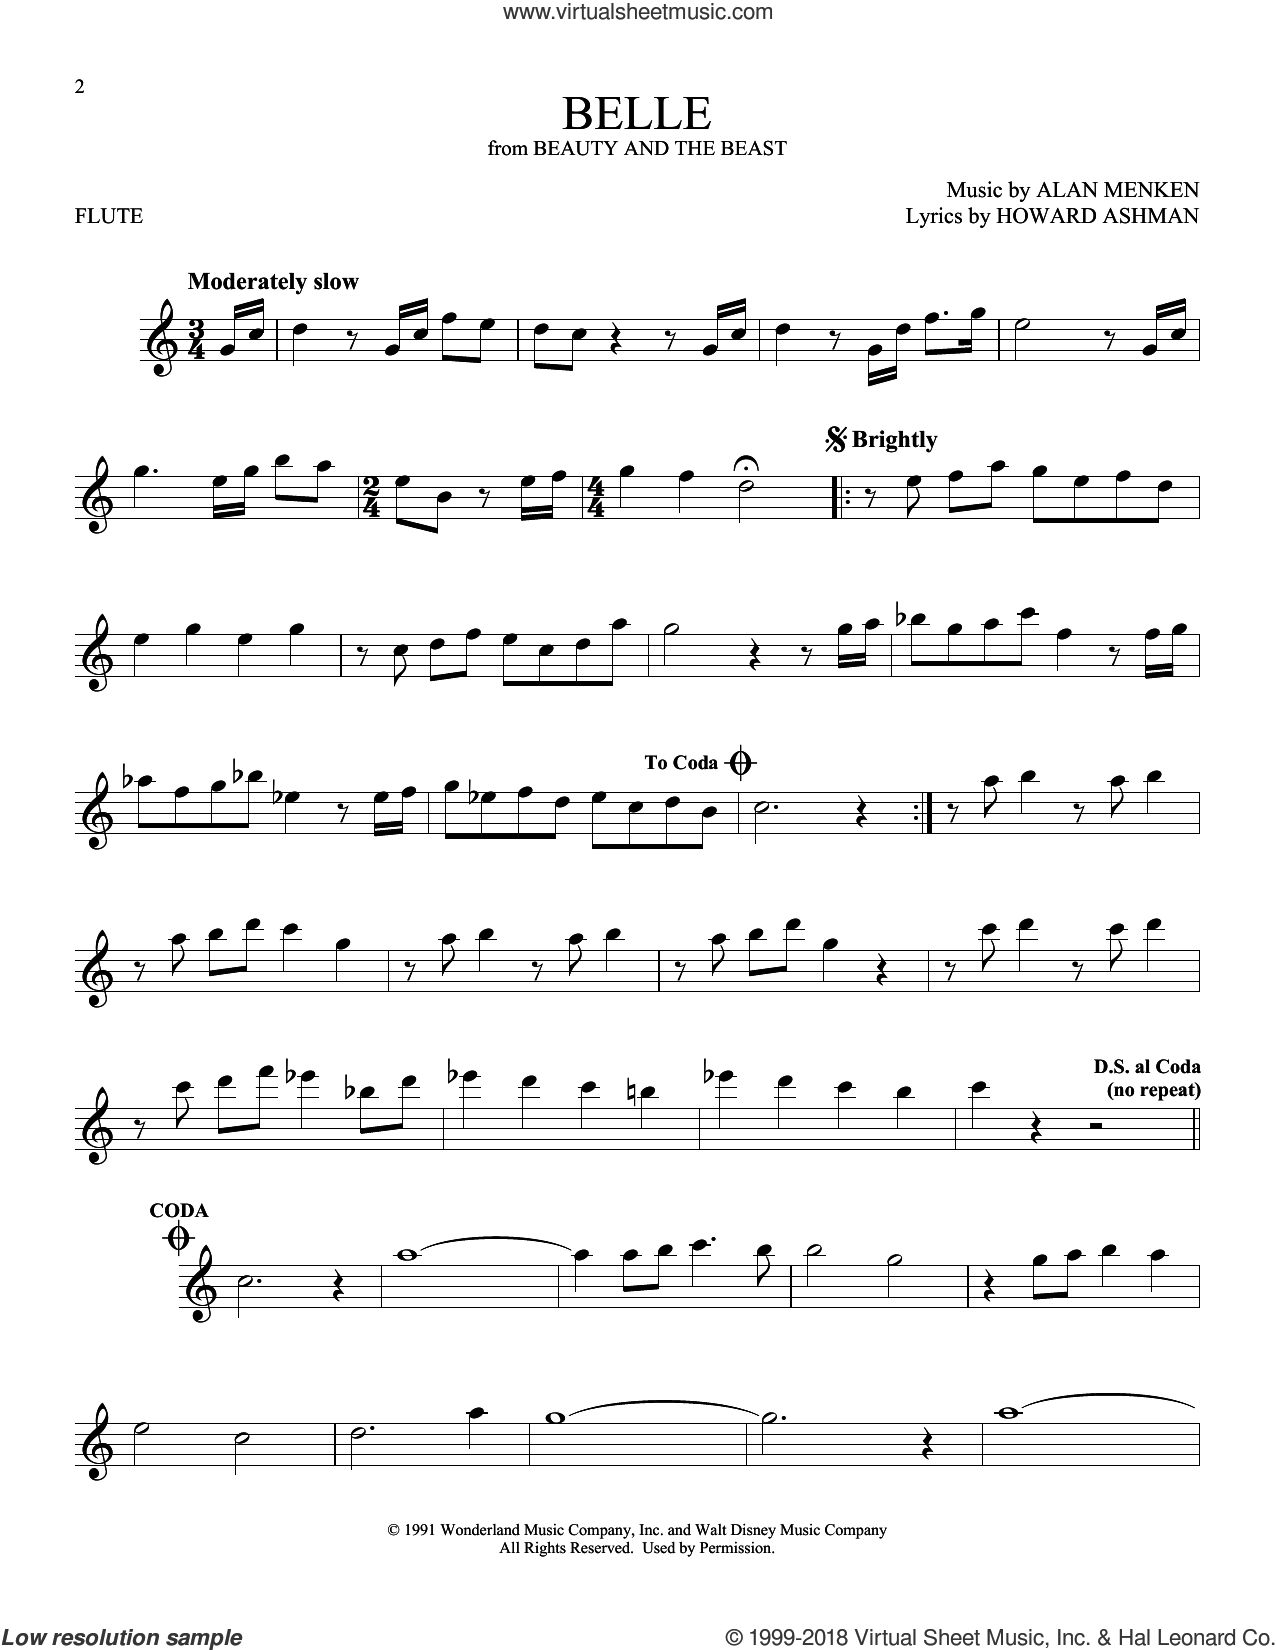 Belle (from Beauty And The Beast) sheet music for flute solo by Alan Menken and Howard Ashman, intermediate skill level